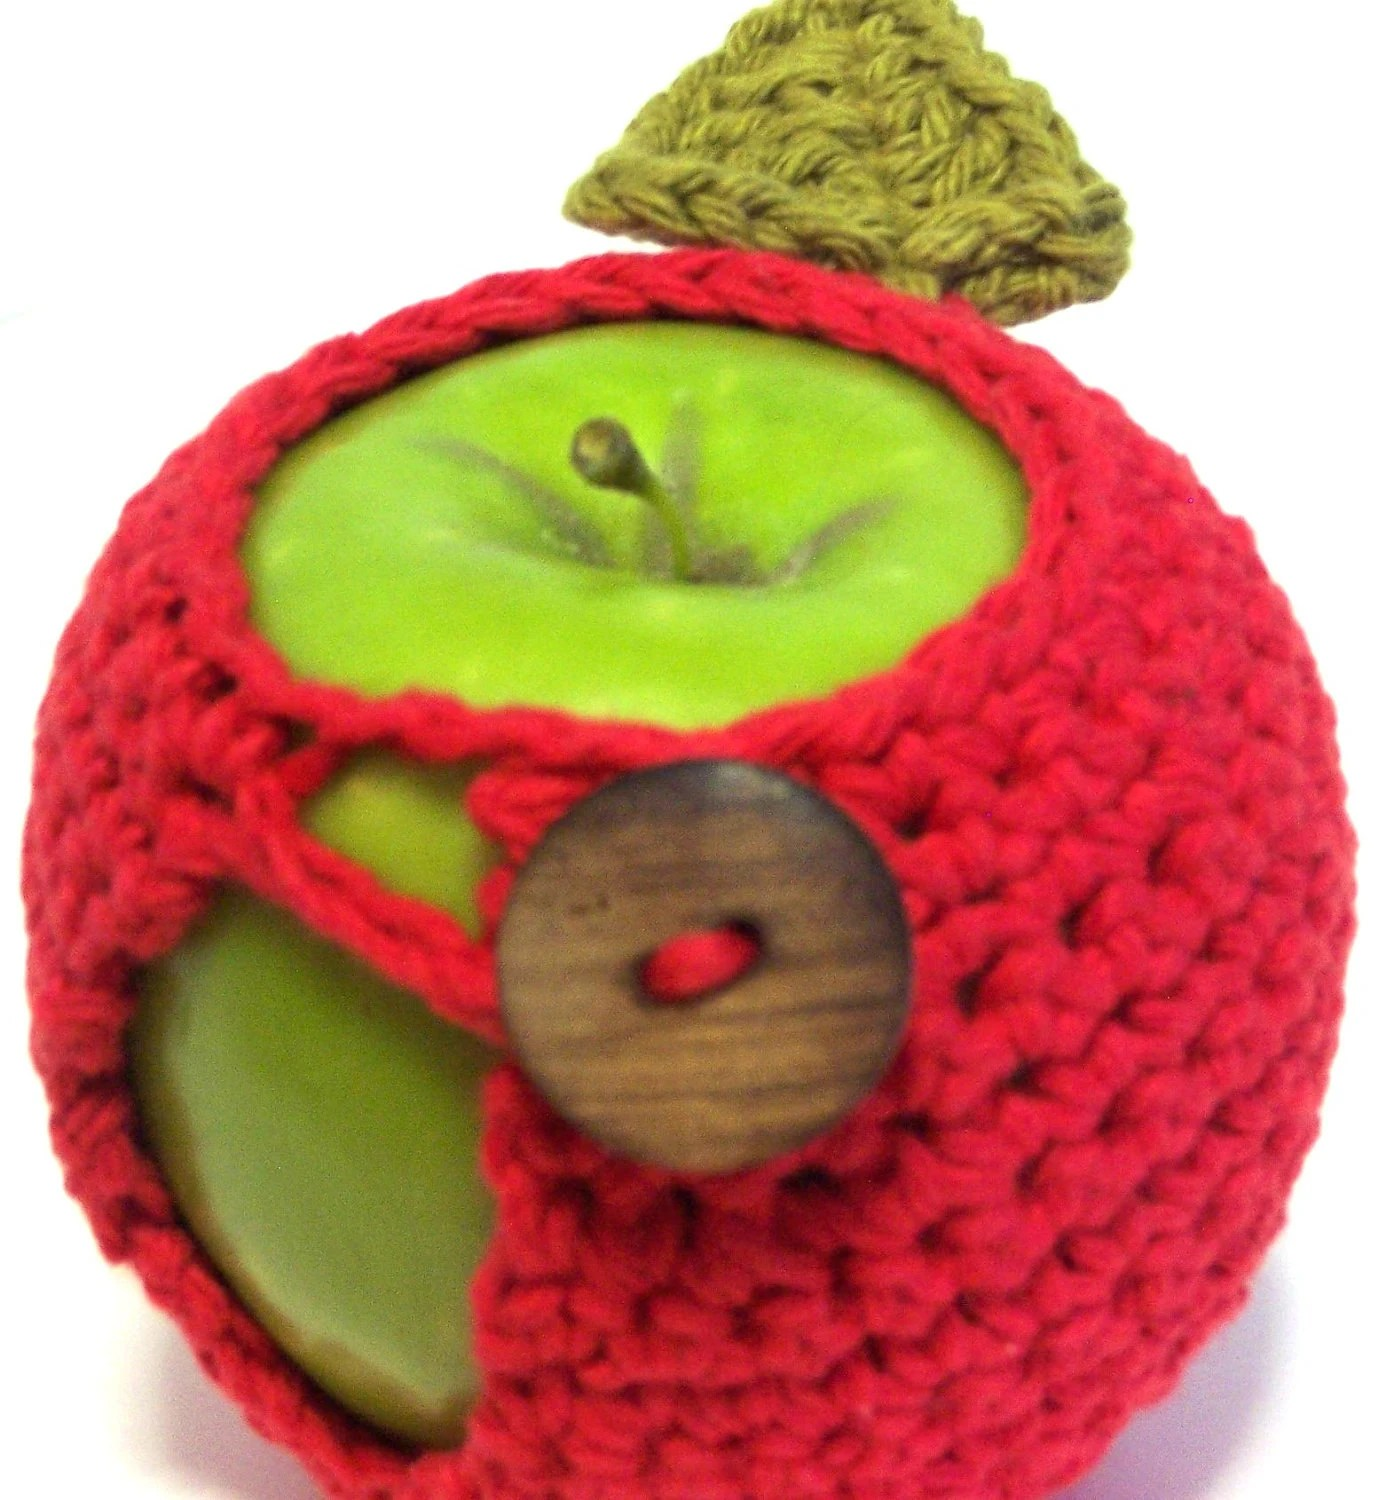 Apple Cozy - You color choice